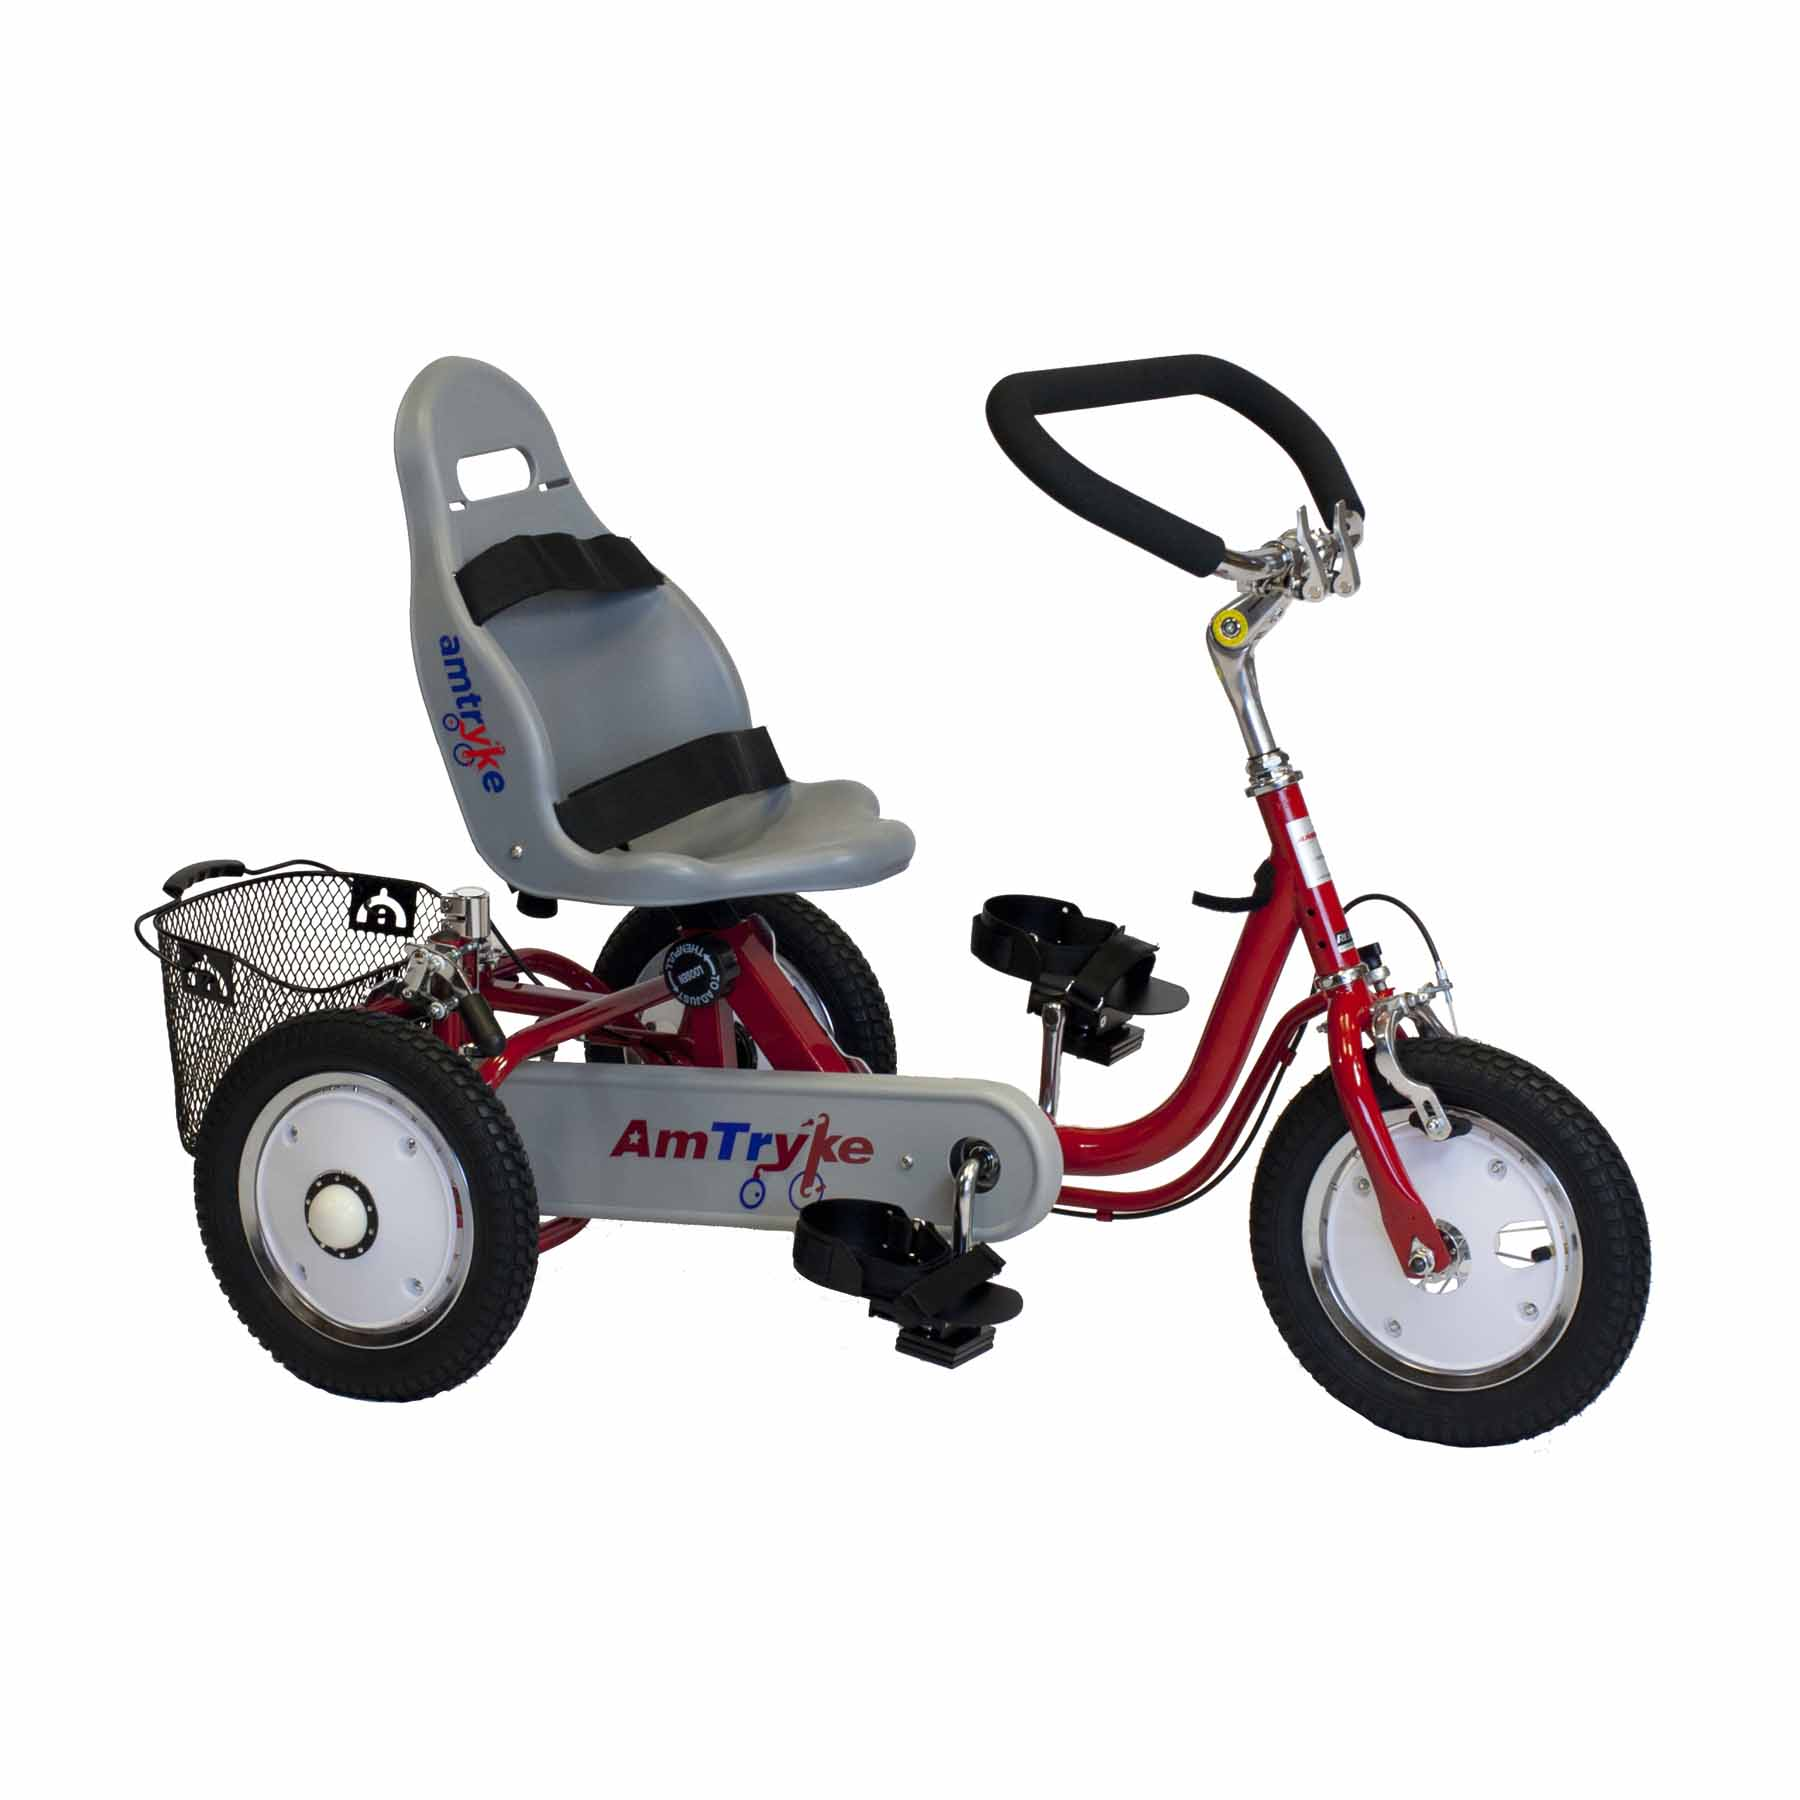 Amtryke Proseries 1412 Tricycle With Bucket Seat | Amtryke Tricycles